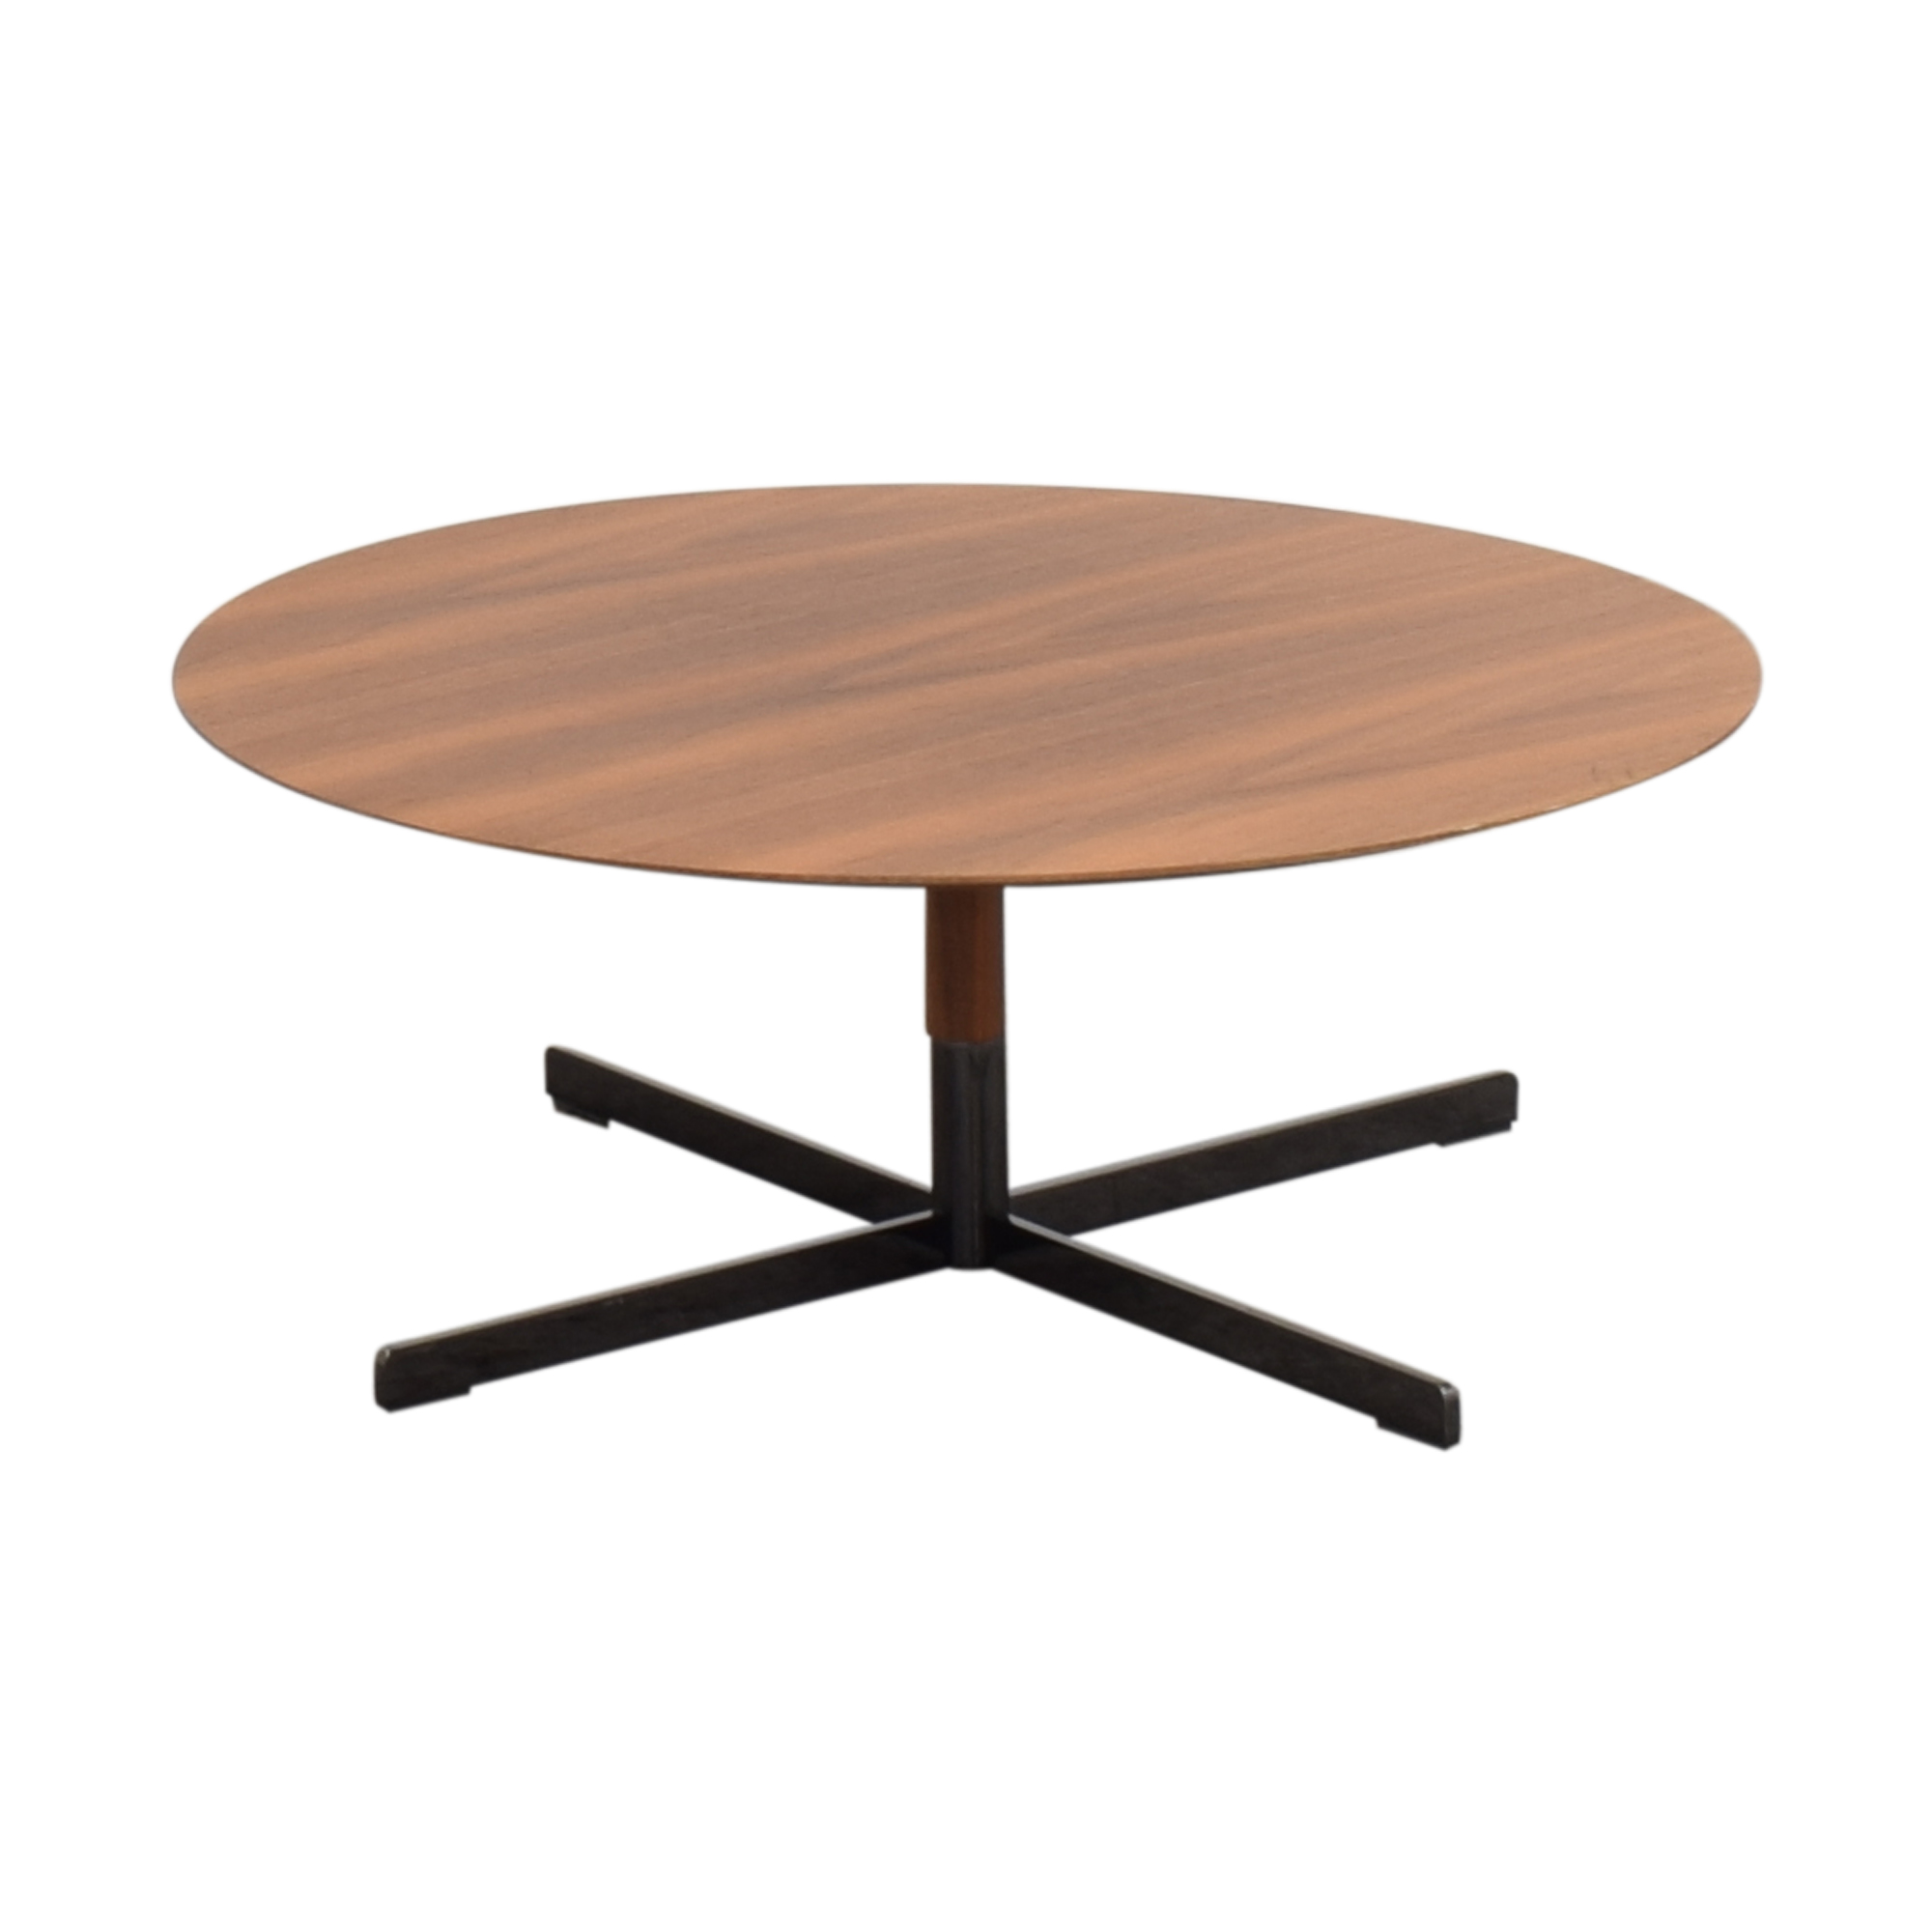 Poltrona Frau Poltrona Frau Bob Coffee Table pa